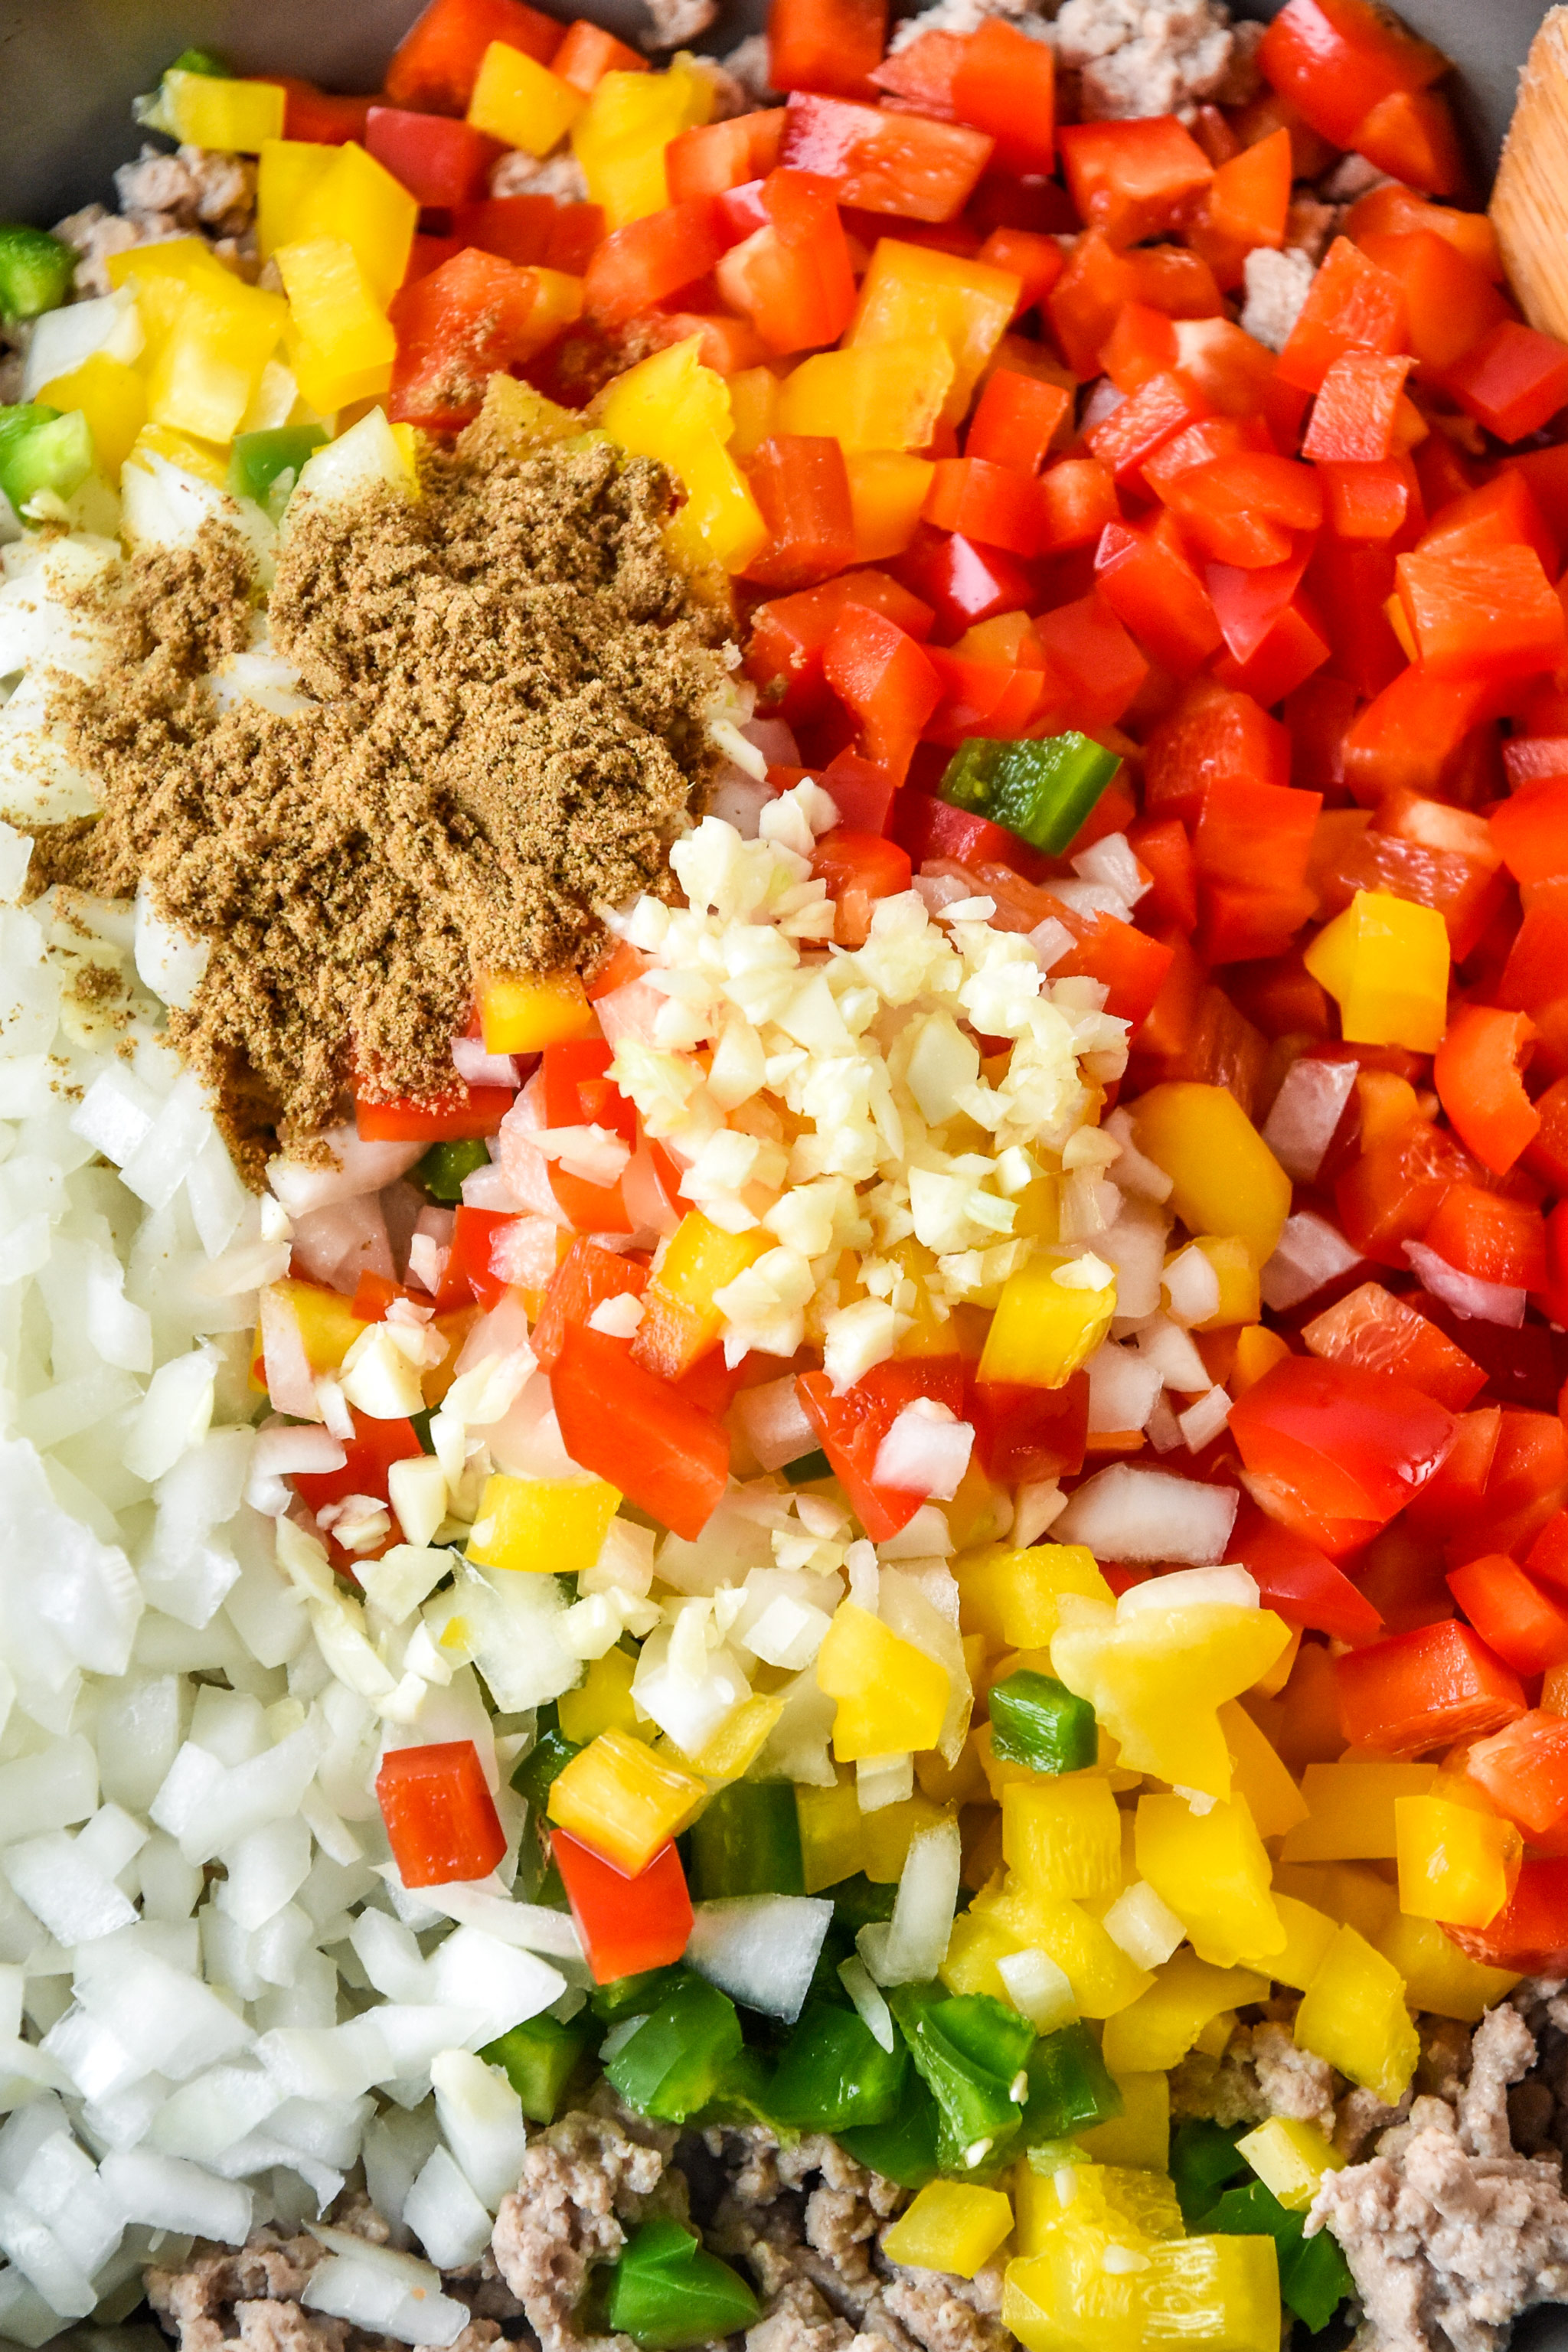 cooking ingredients for the chipotle ground turkey skillet meal prep